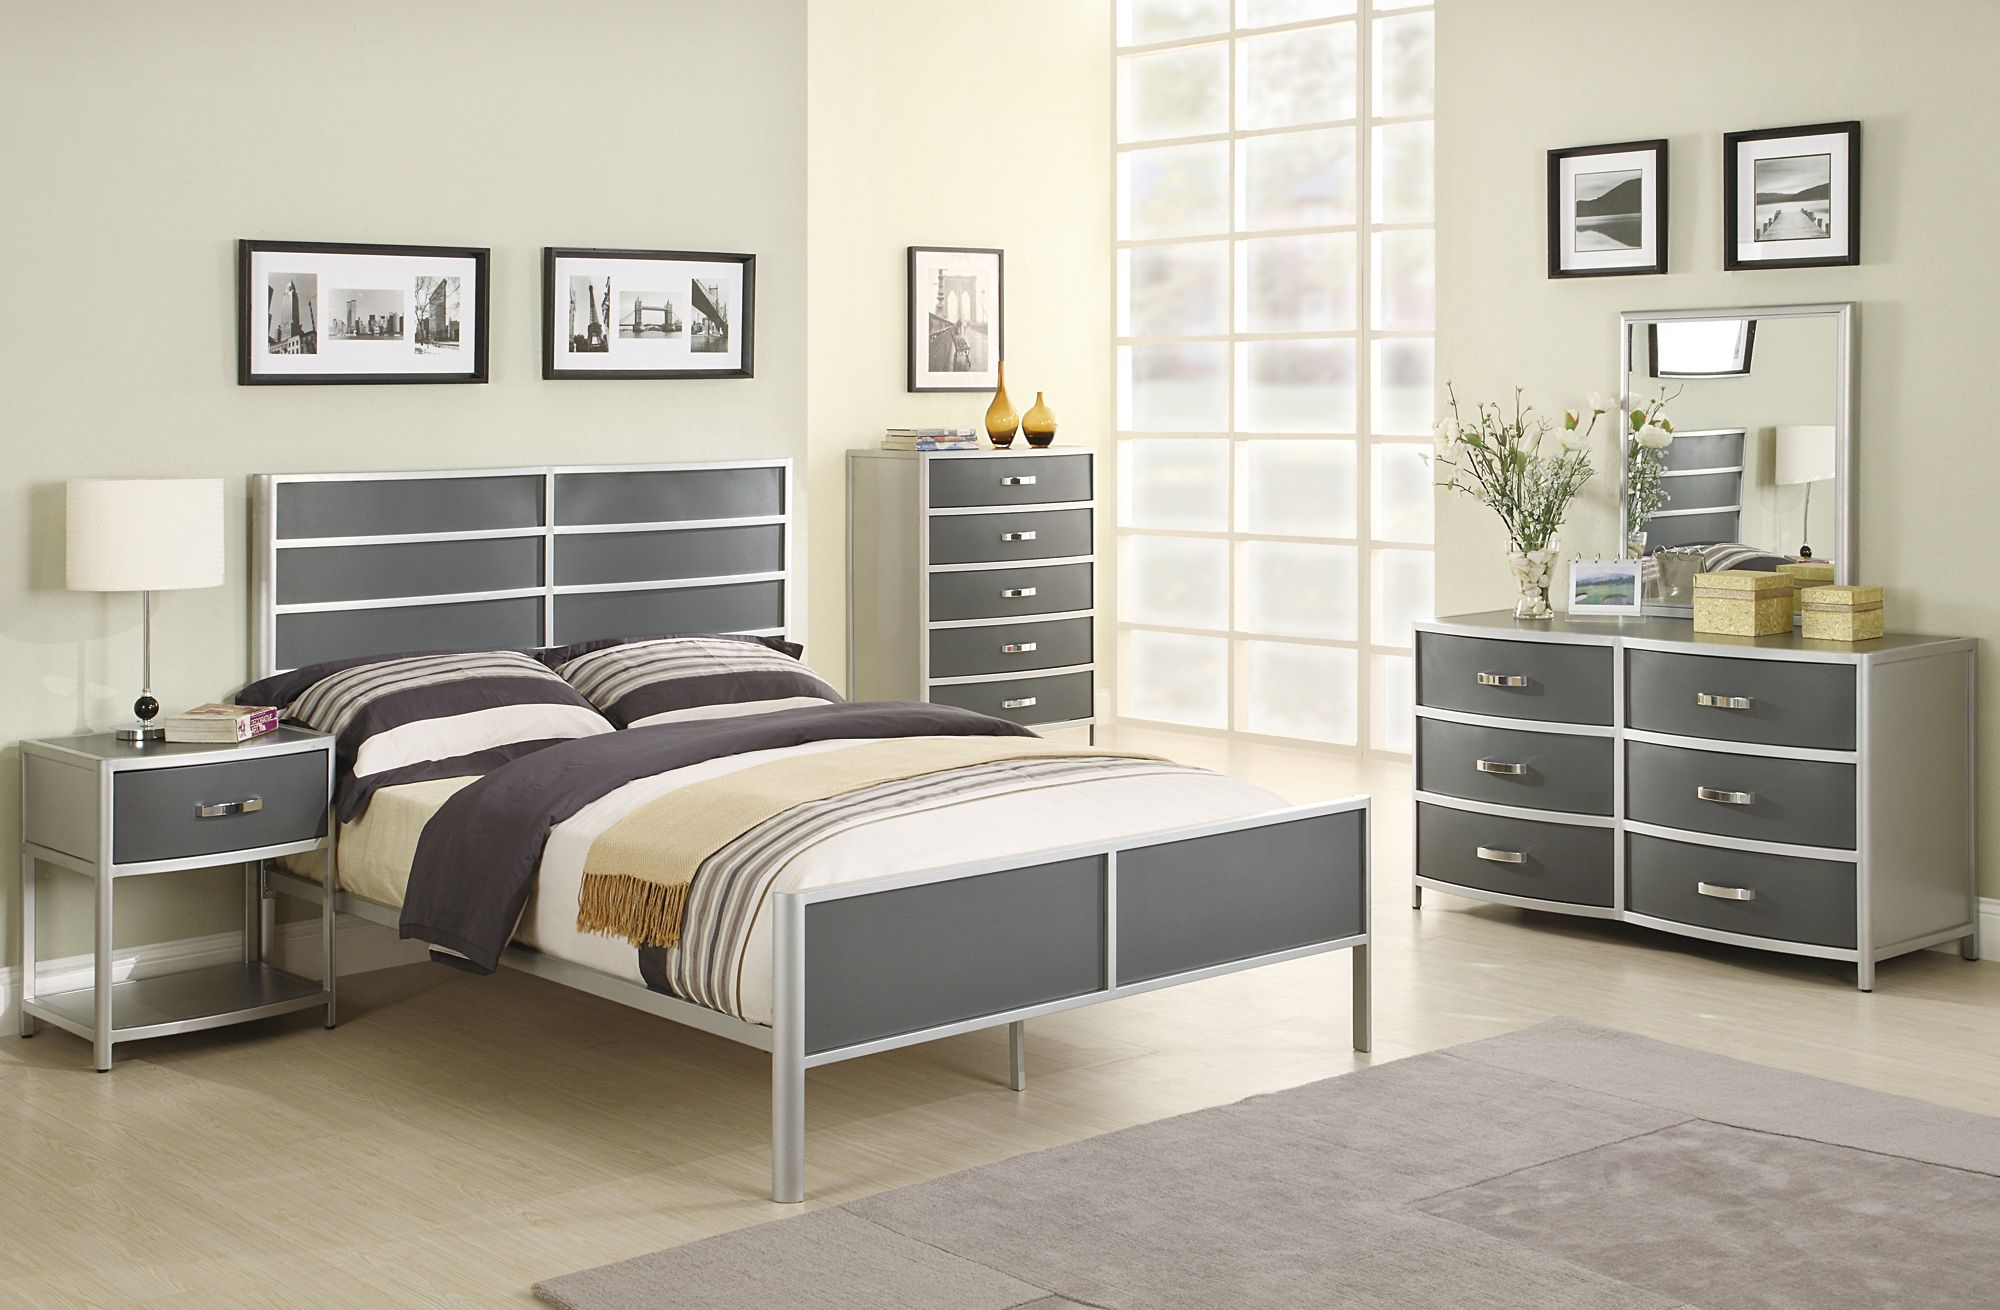 Modern Twin Bedroom Set Idea With Metal Master Bed And Nightstand